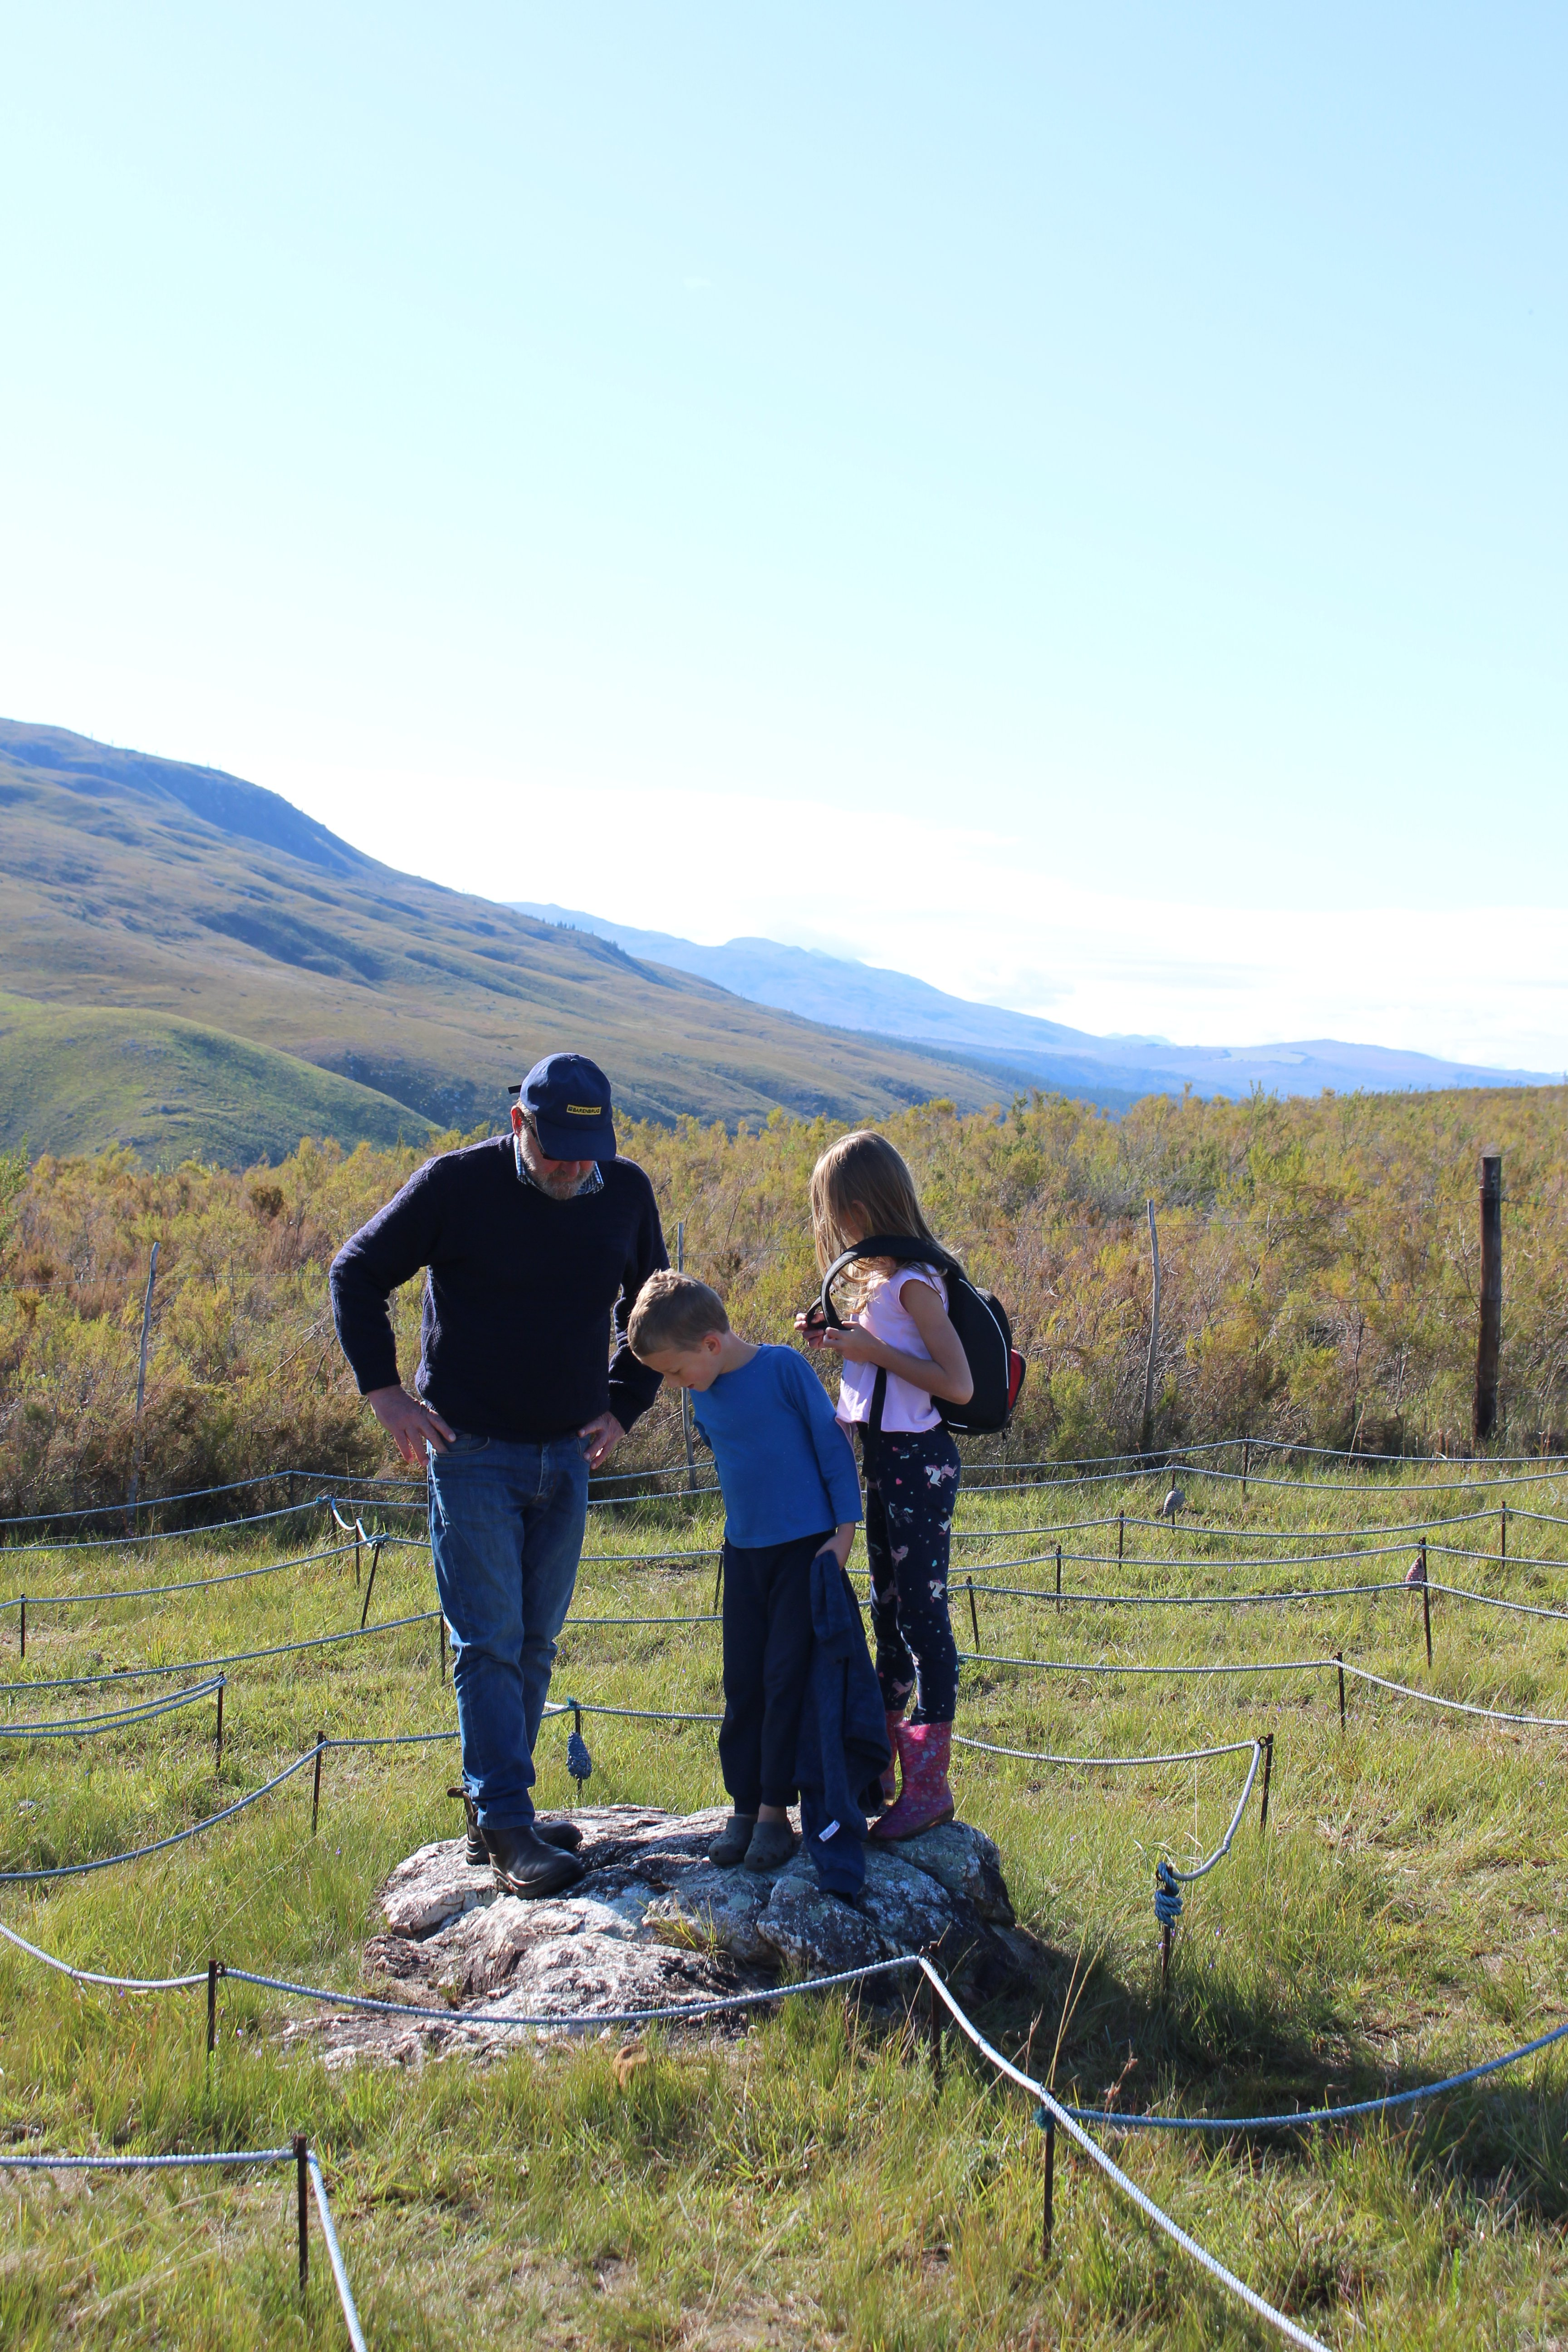 Labarynth Meditation | Swellendam Buffeljags | Family Friendly Farmstay | Things to do with Kids